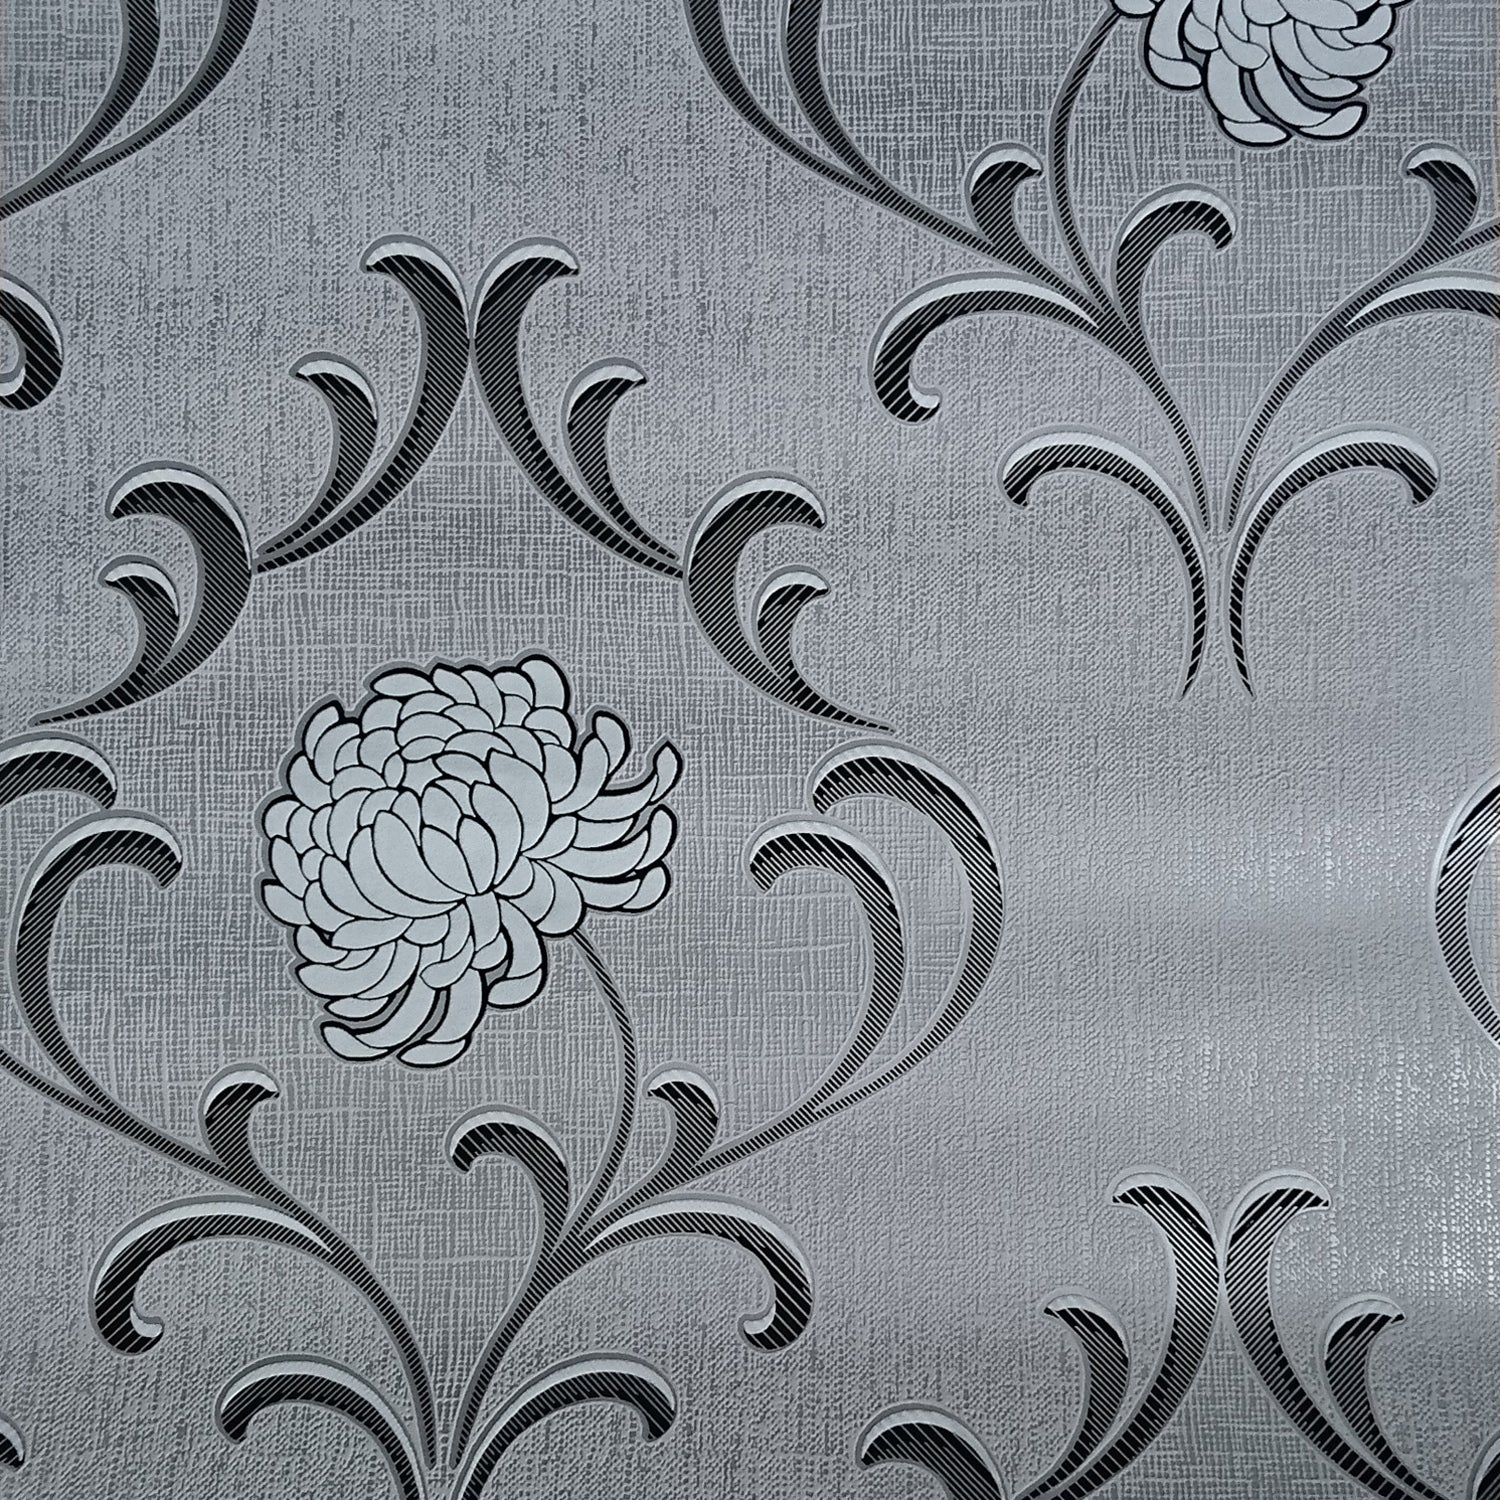 SALE Cameo Floral Luxe Wallpaper | Silver, Grey, Black & White